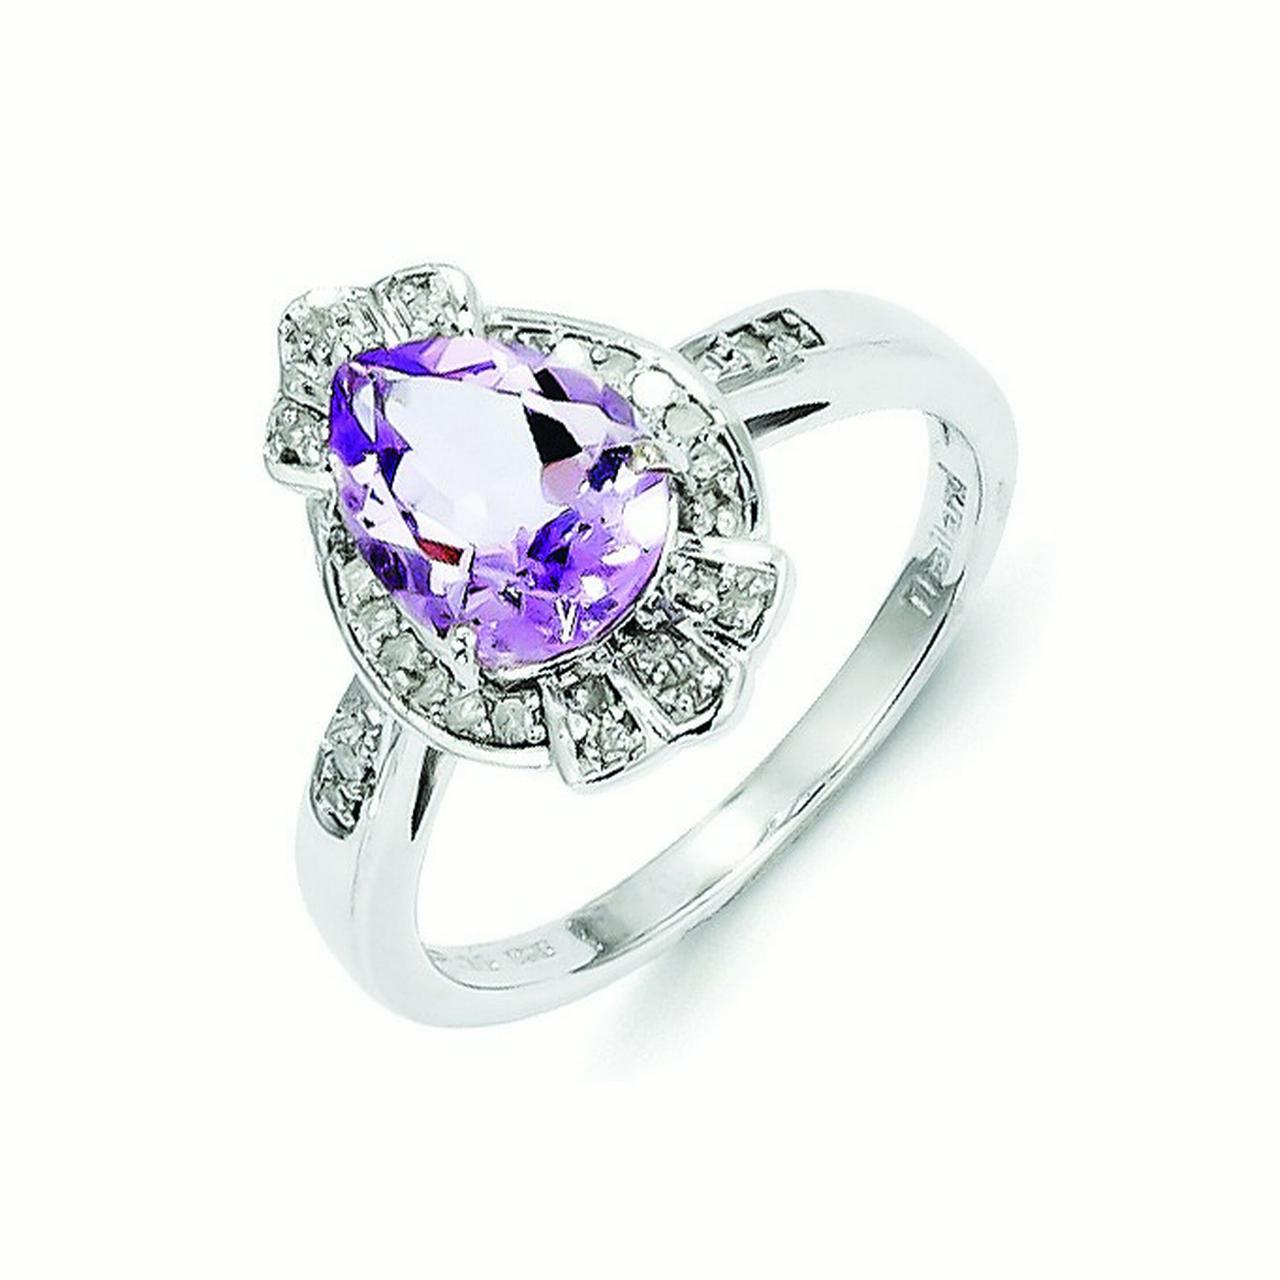 Sterling Silver Diamond and Pink Amethyst Teardrop Ring Ring Size: 7 to 9 by